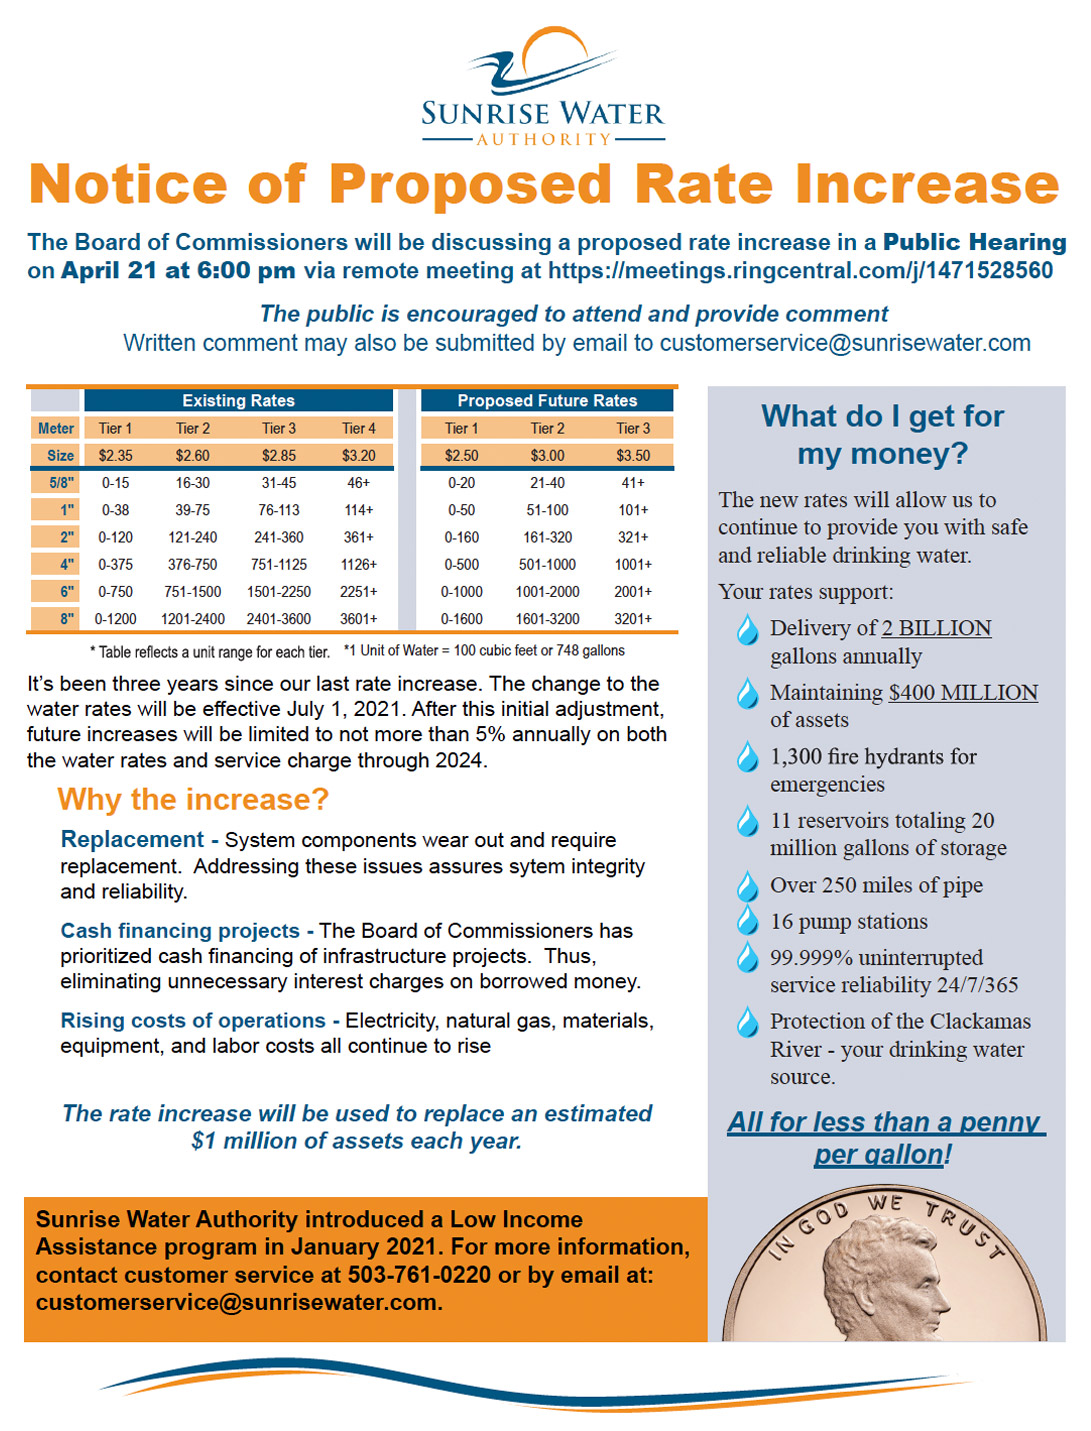 Notice of Proposed Rate Increase for Non-Residential Customers